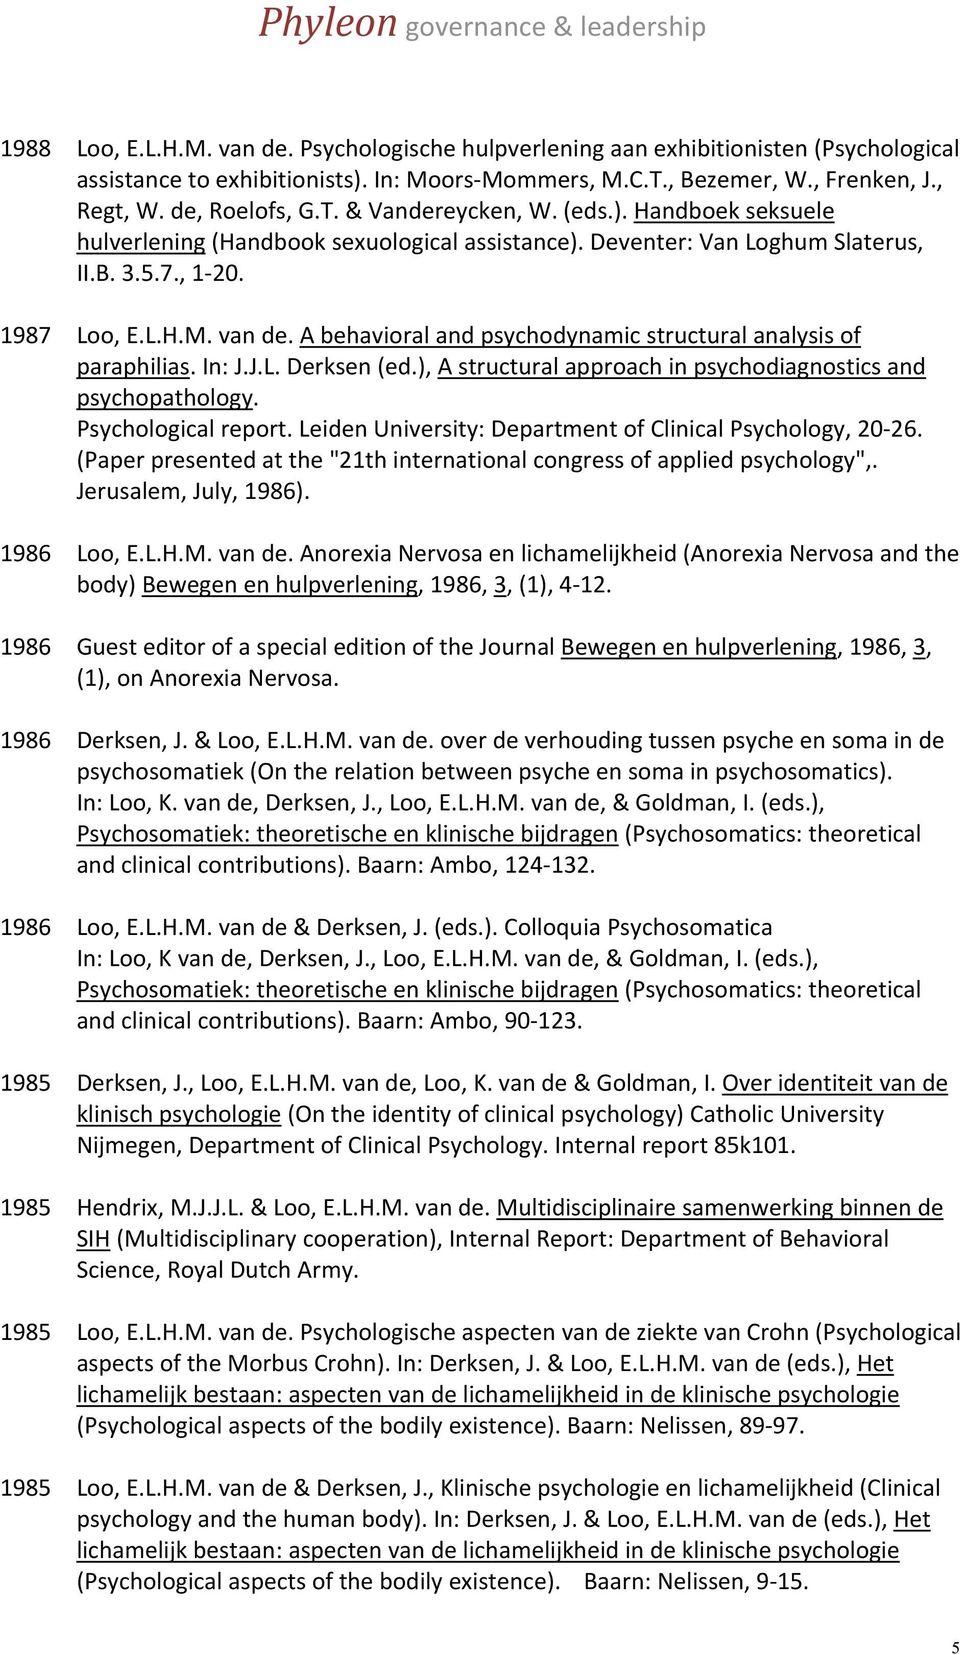 A behavioral and psychodynamic structural analysis of paraphilias. In: J.J.L. Derksen (ed.), A structural approach in psychodiagnostics and psychopathology. Psychological report.